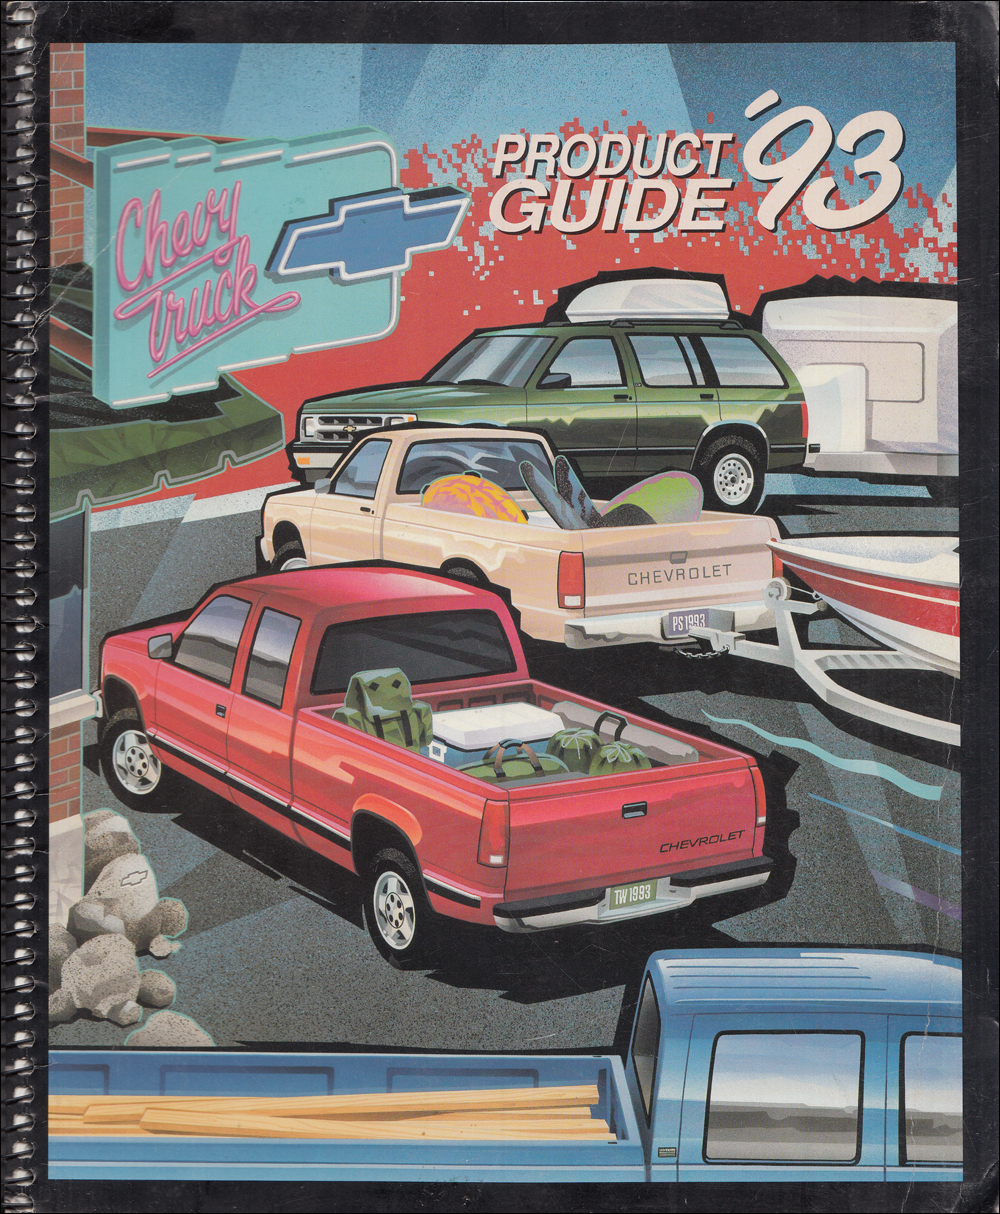 1993 Chevrolet Truck Product Guide Sales Training Dealer Album Original